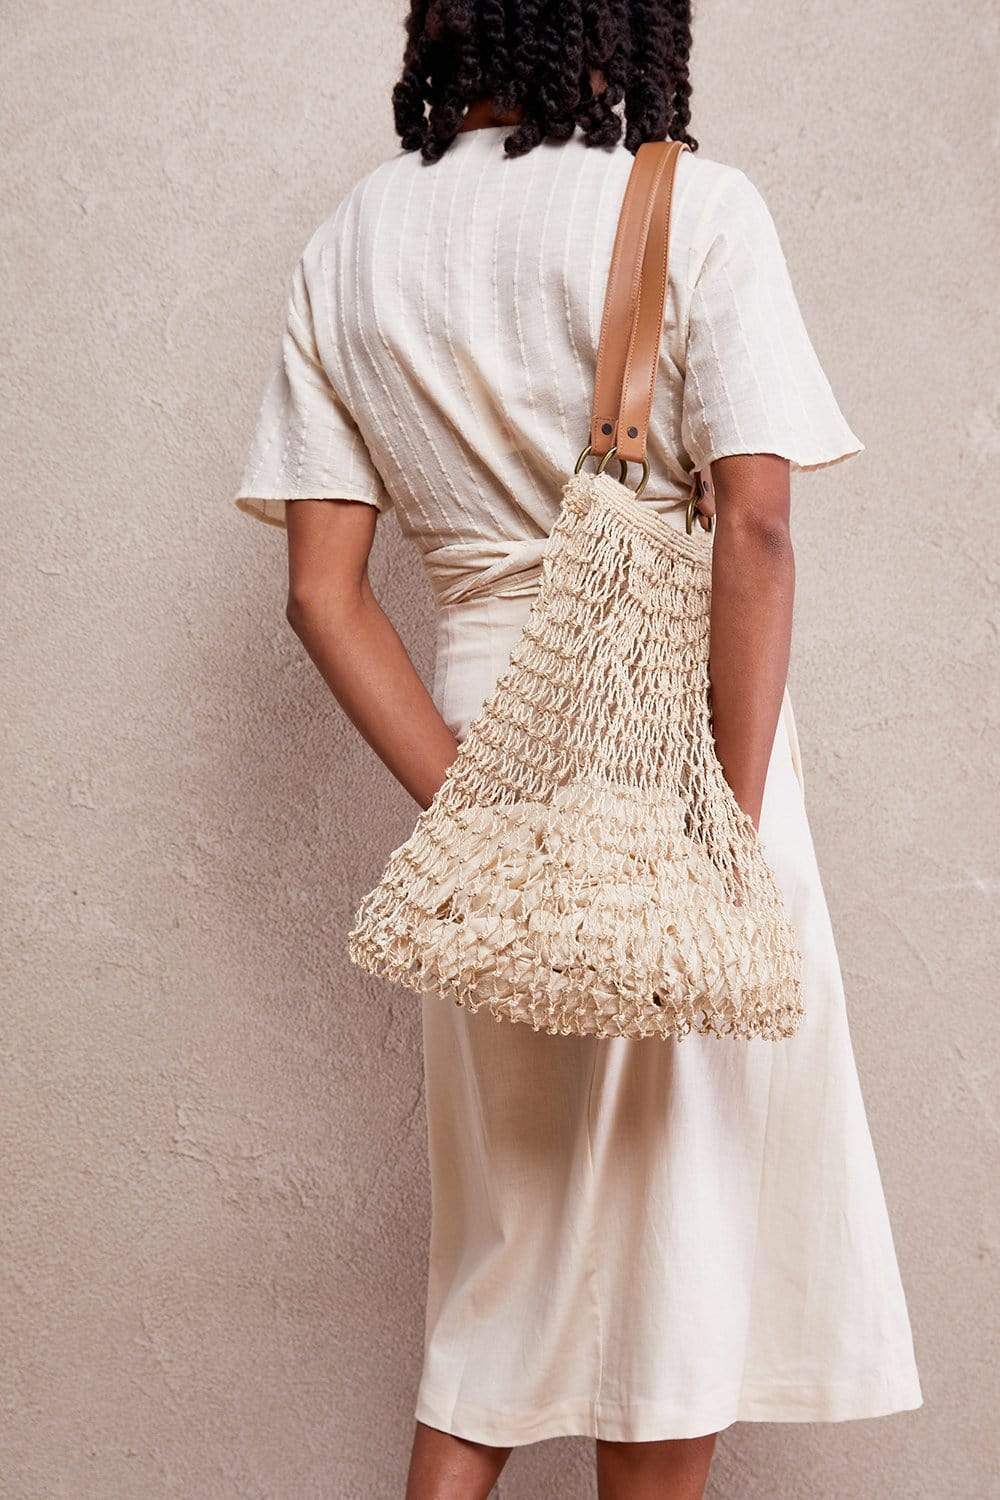 The Dharma Door Bags and Totes String Bag with Leather Handles Jute String Bag - Natural with Tan Handles